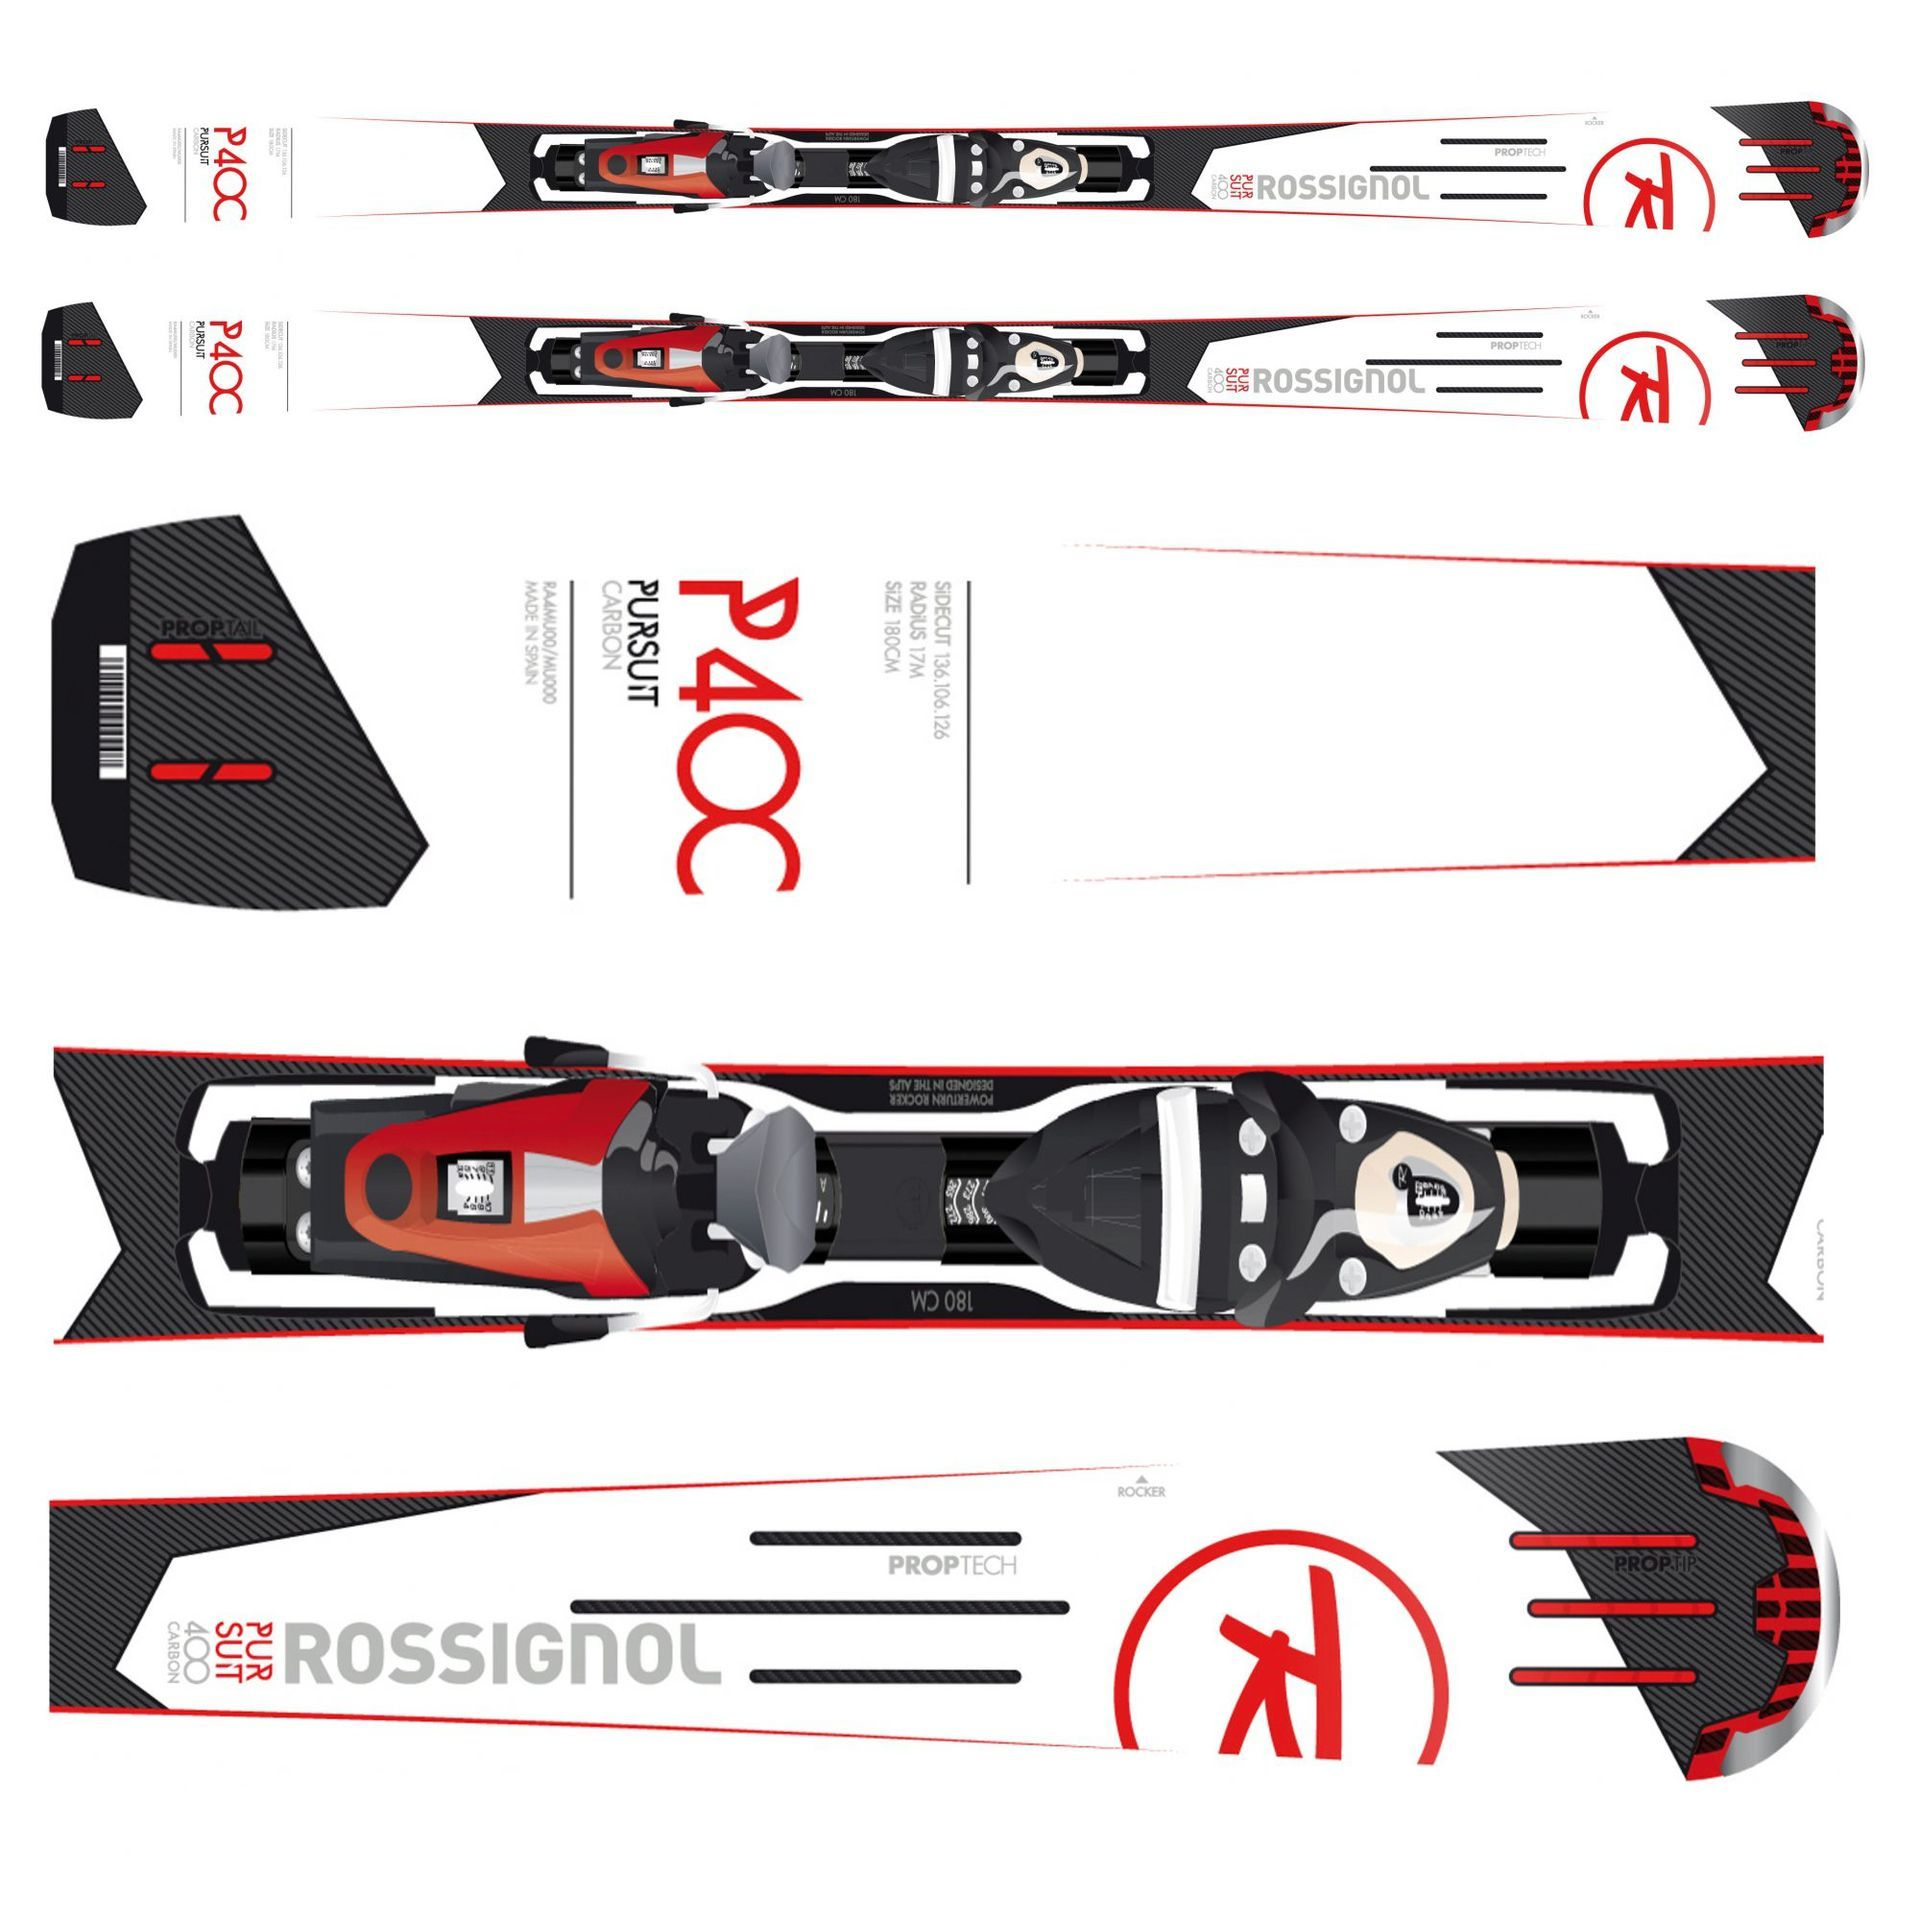 NARTY ROSSIGNOL PURSUIT 400 CARBON + AXIUM 110 TPI2 B83